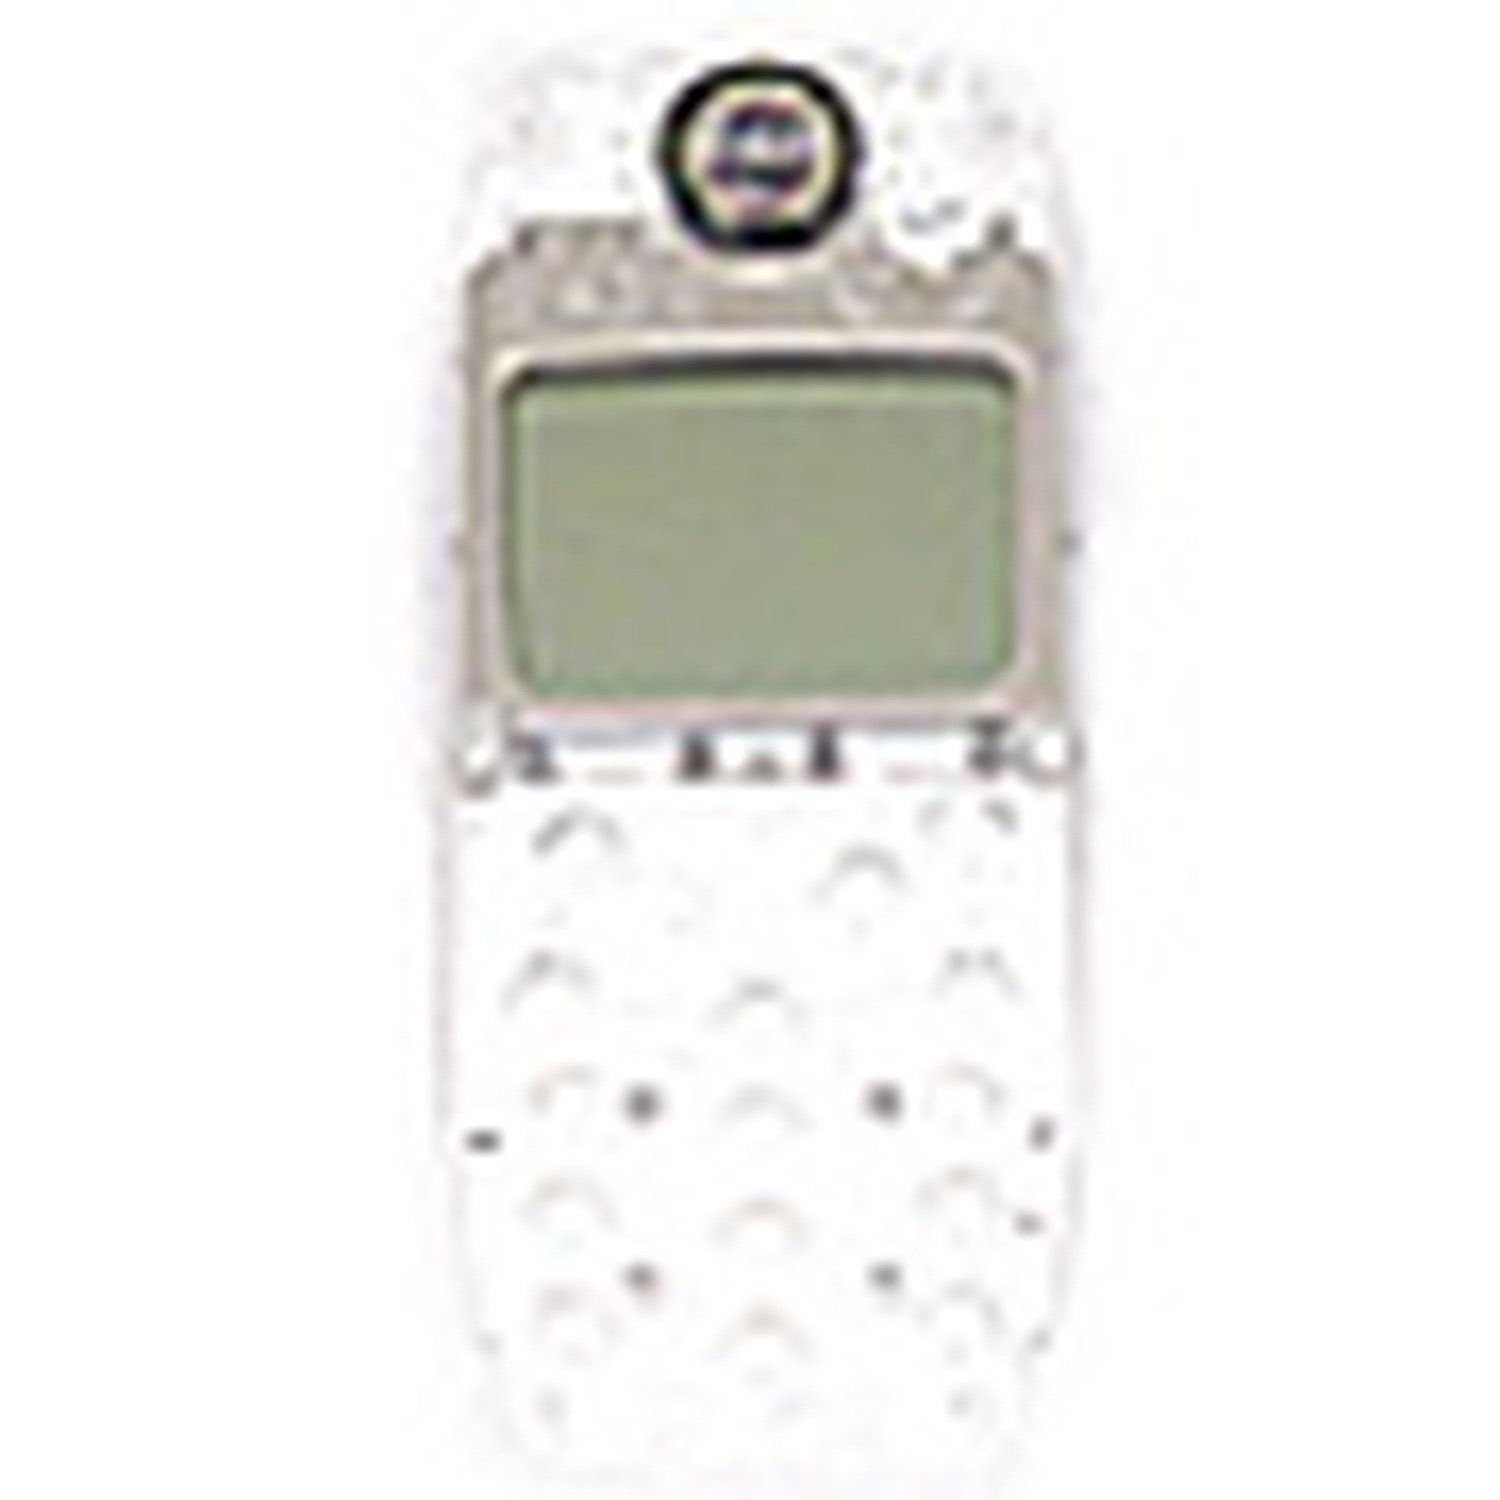 LCD Display Nokia 3310 And 3330 Full